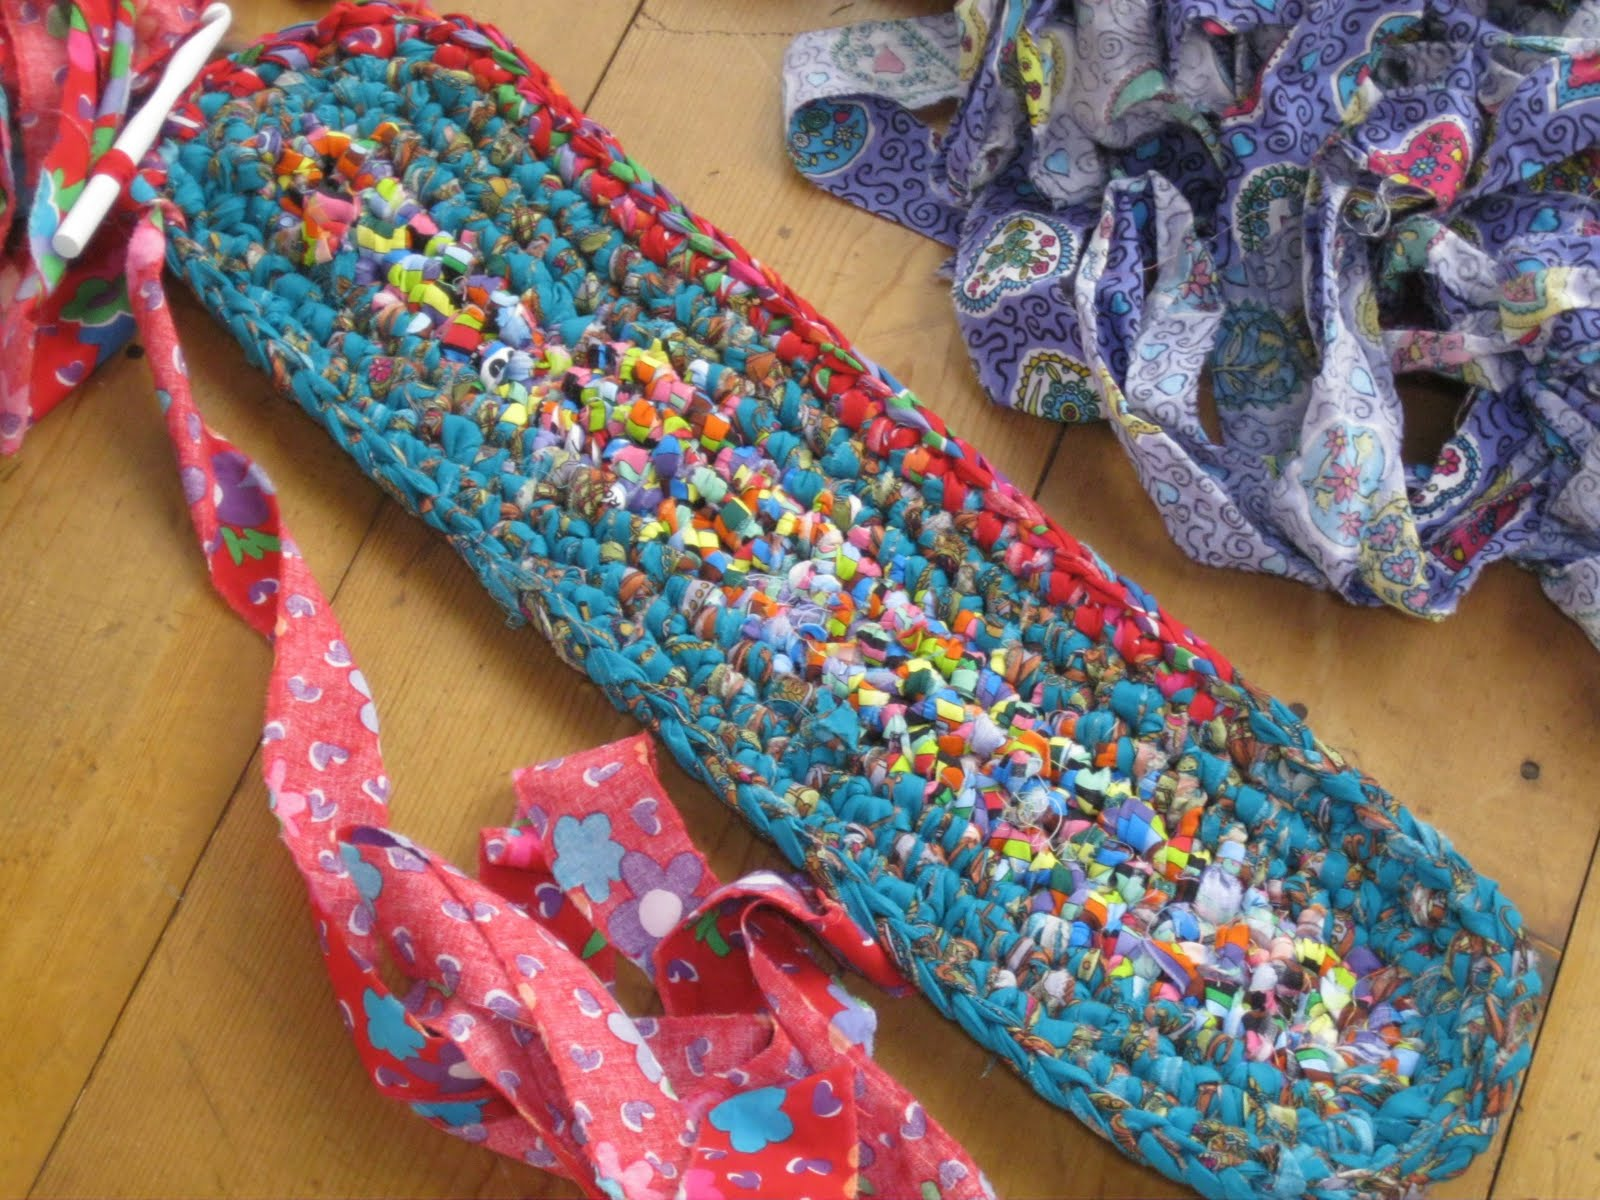 How To Make A Rag Rug The Homestead Tradition Lives On